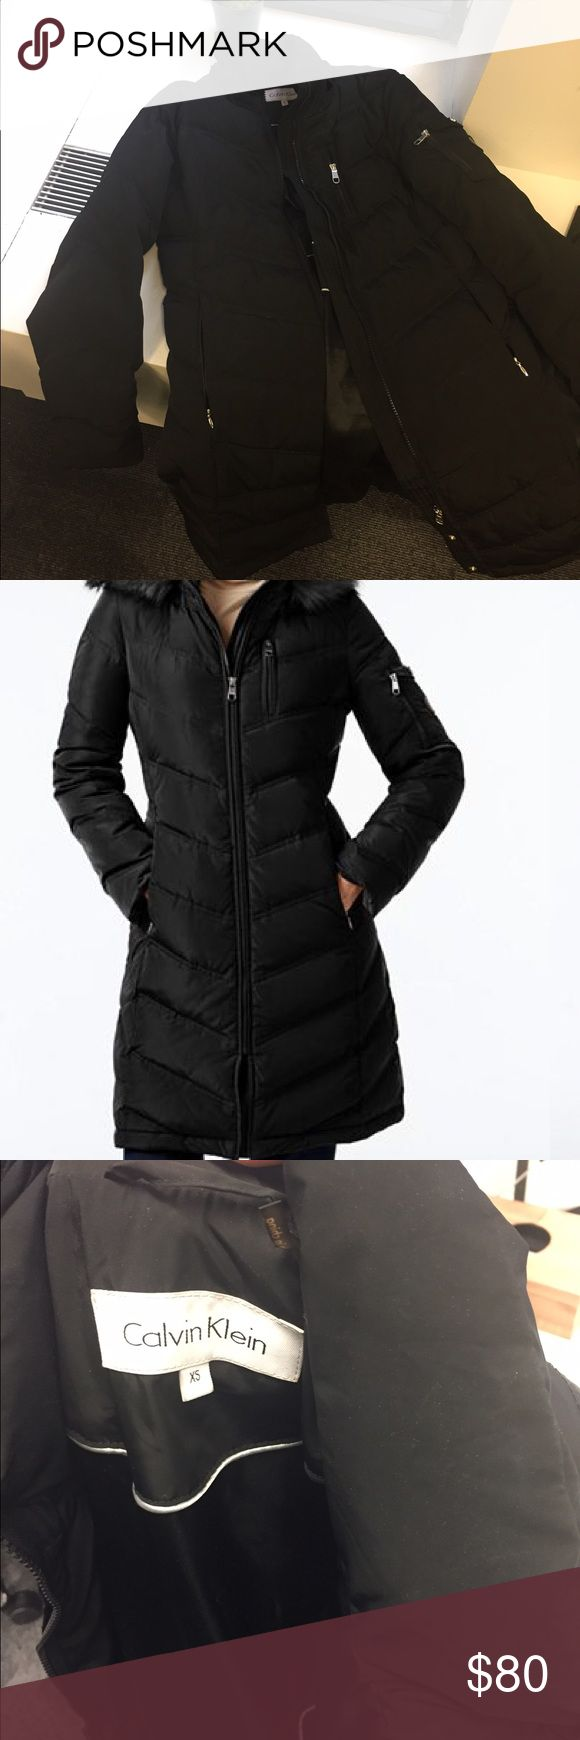 Calvin Klein Water-Resistant Winter Puffer Coat Warm puffer jacket. Fur hood not included. Down/feathers fill. Calvin Klein Jackets & Coats Puffers